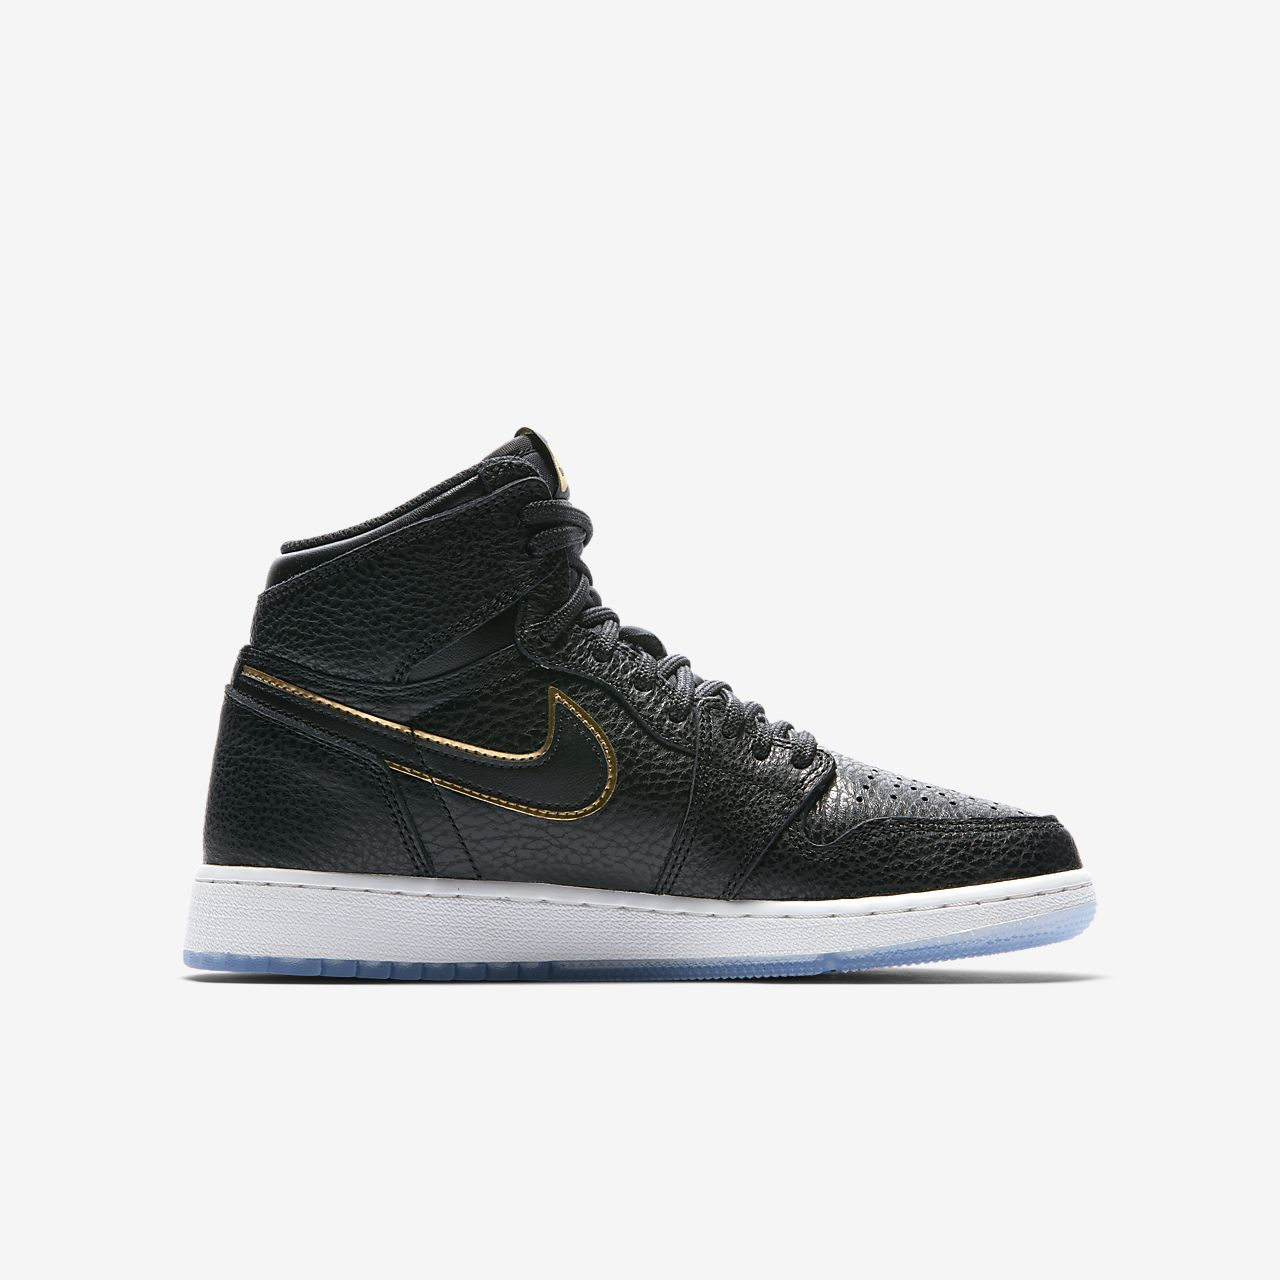 air jordan 1 high og nz